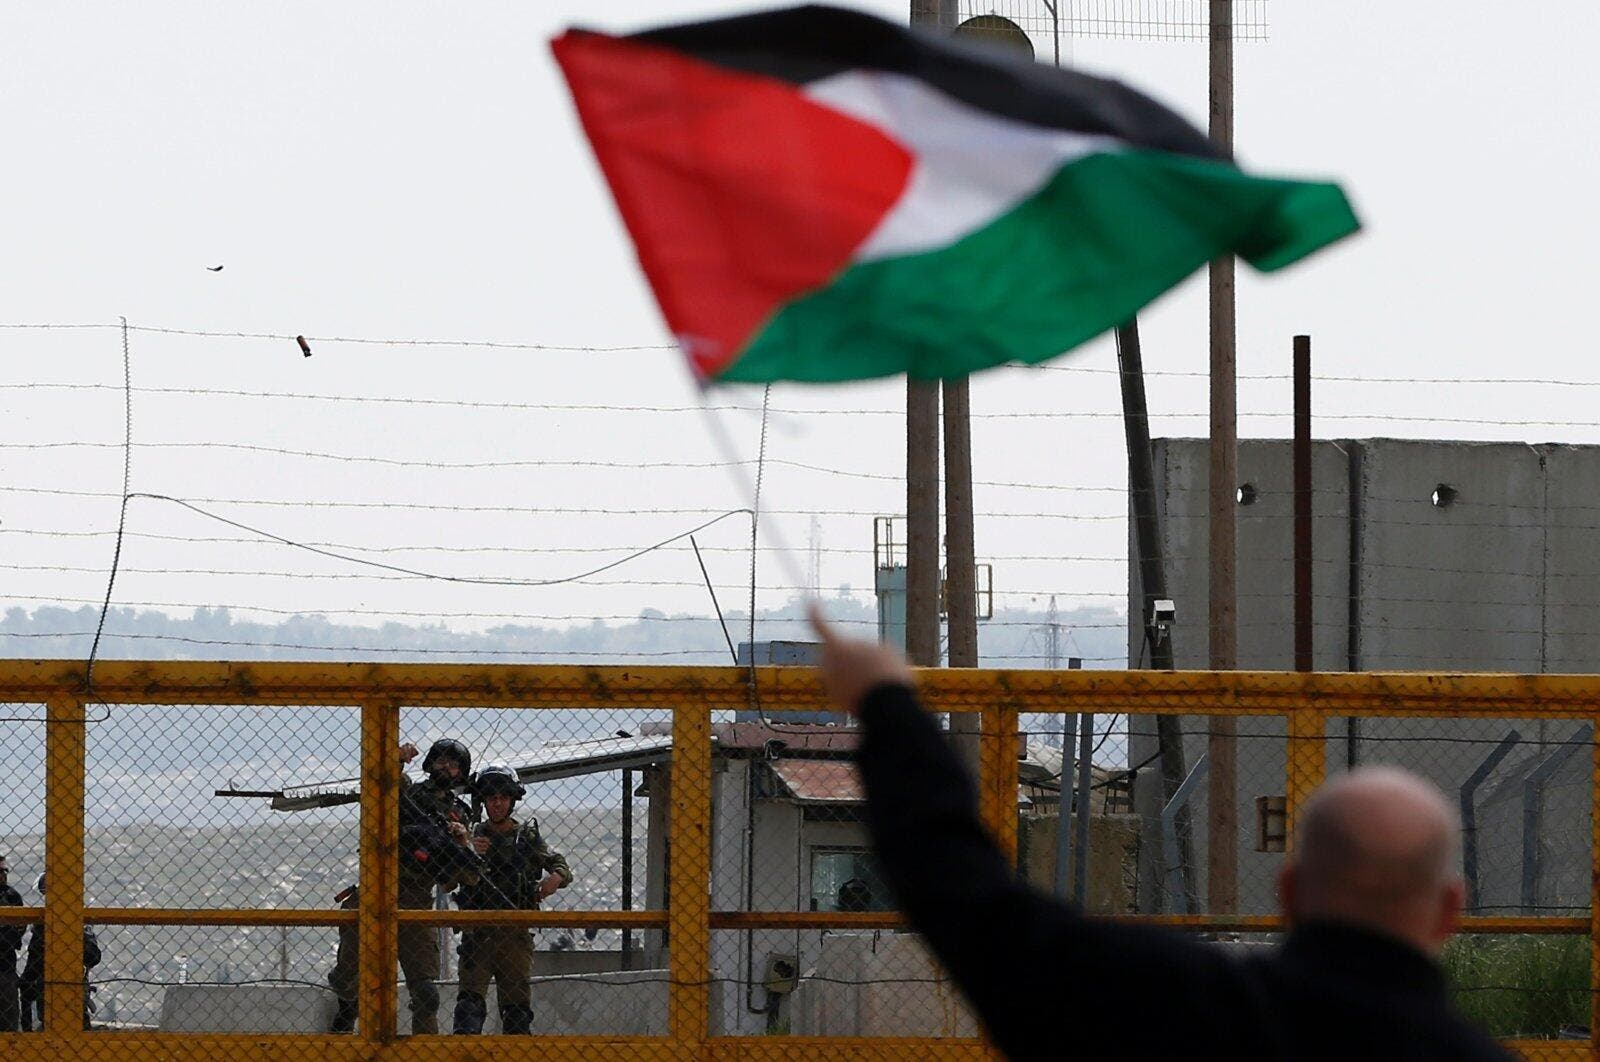 Palestinian Teen's Jail Term Extended For Two More Years